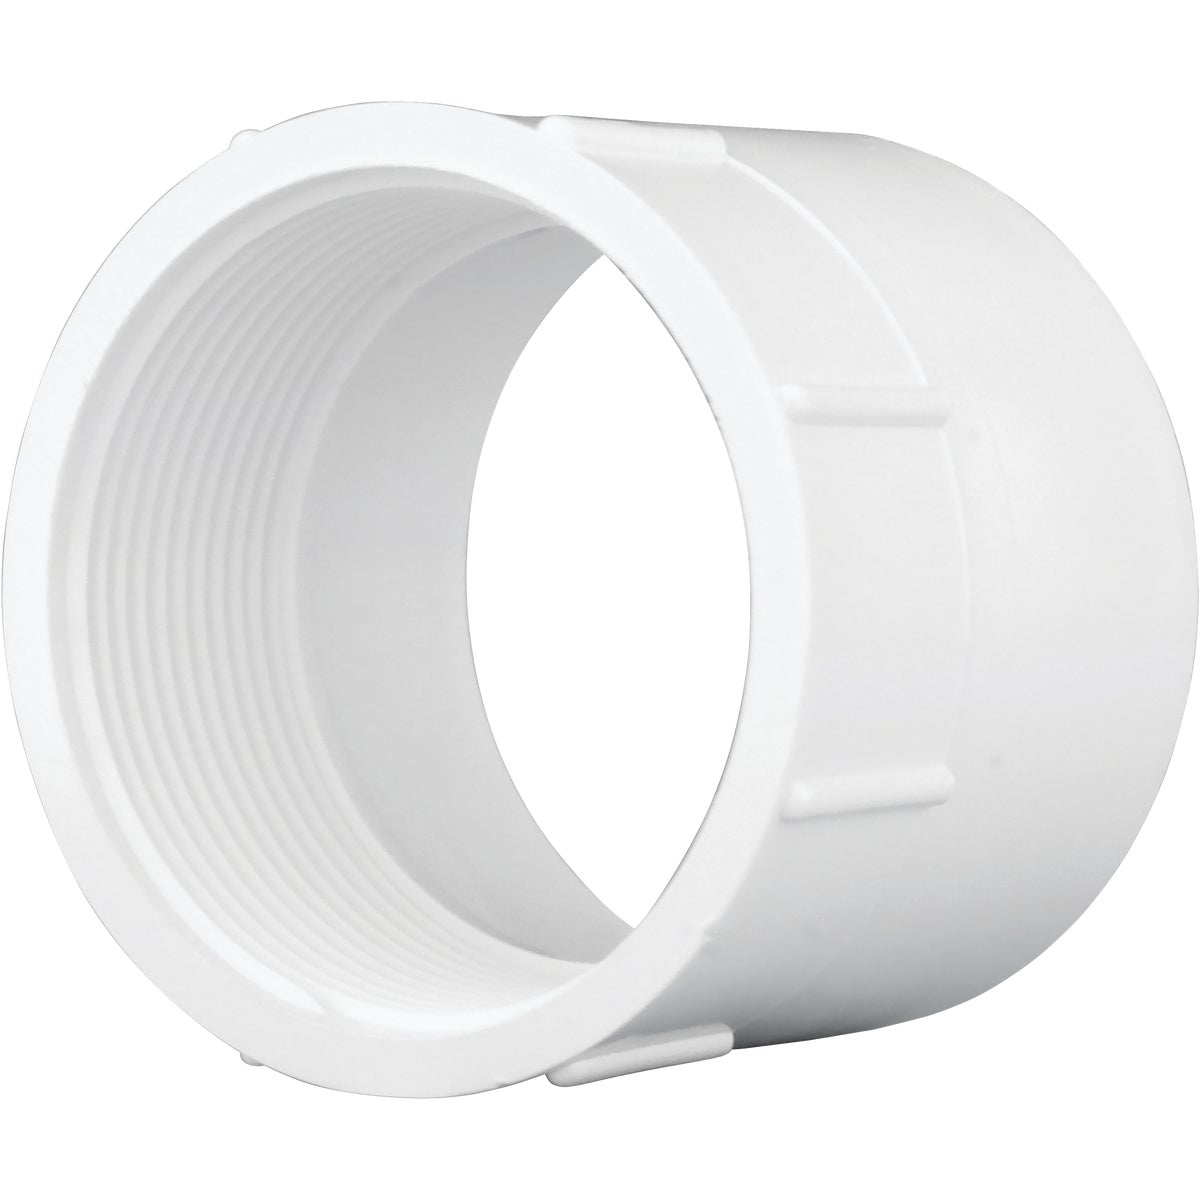 "3"" DWV FEMALE ADAPTER - 70330 by Genova Inc  Pvc Dwv"